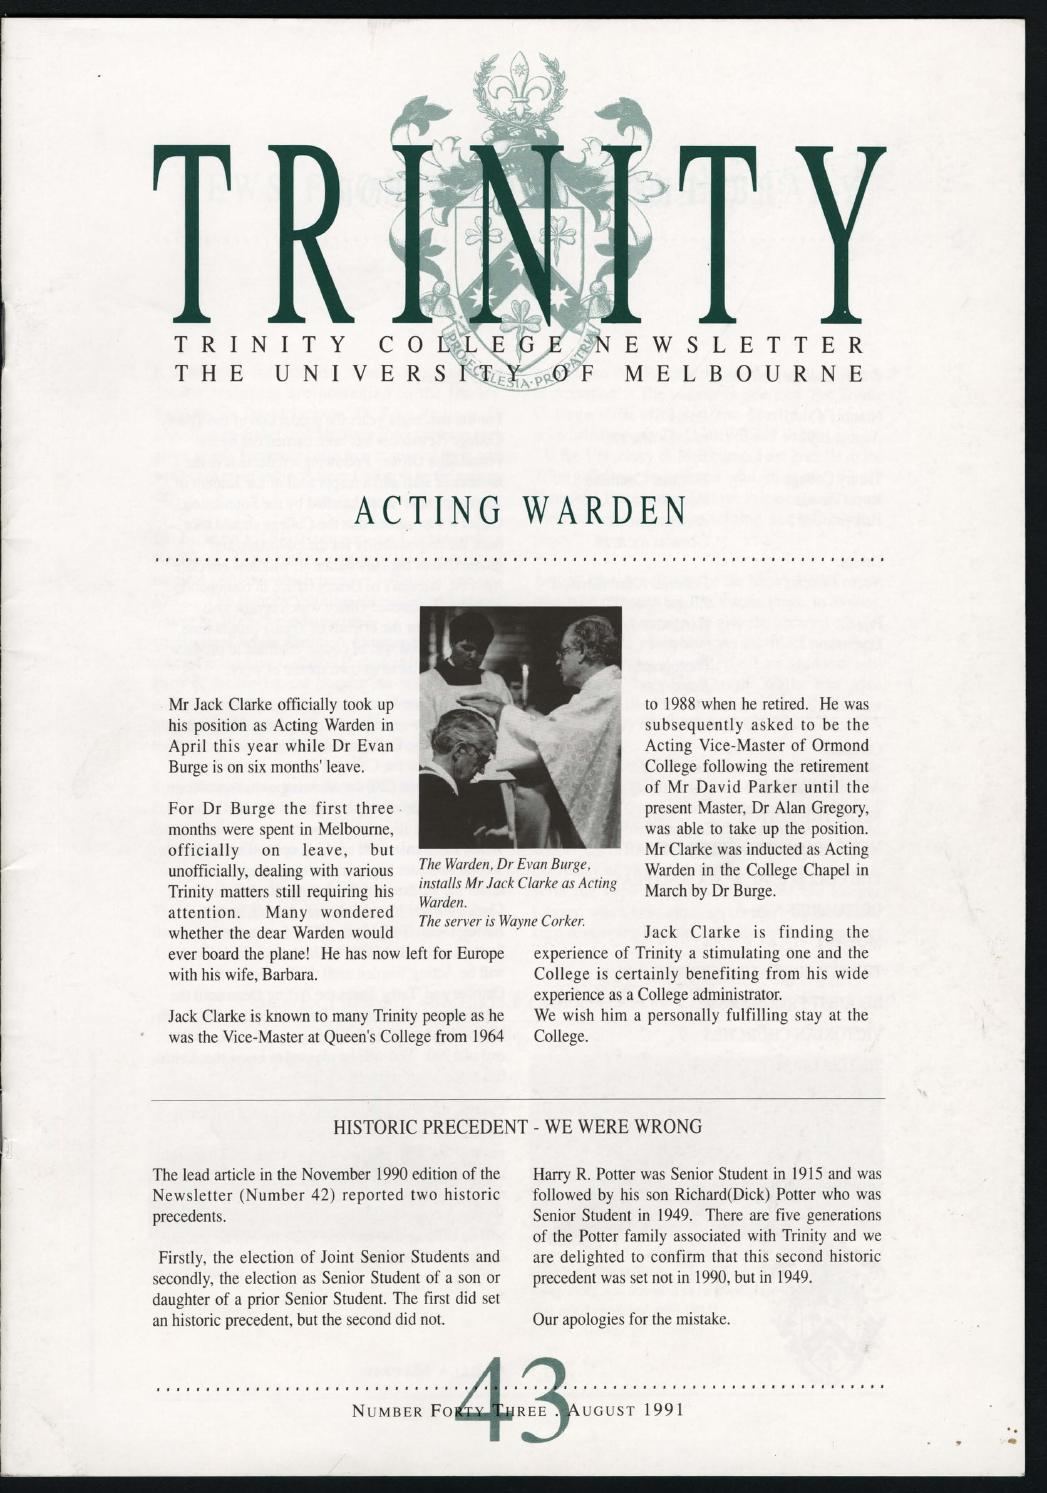 Trinity College Newsletter, vol 1 no 43, August 1991 by